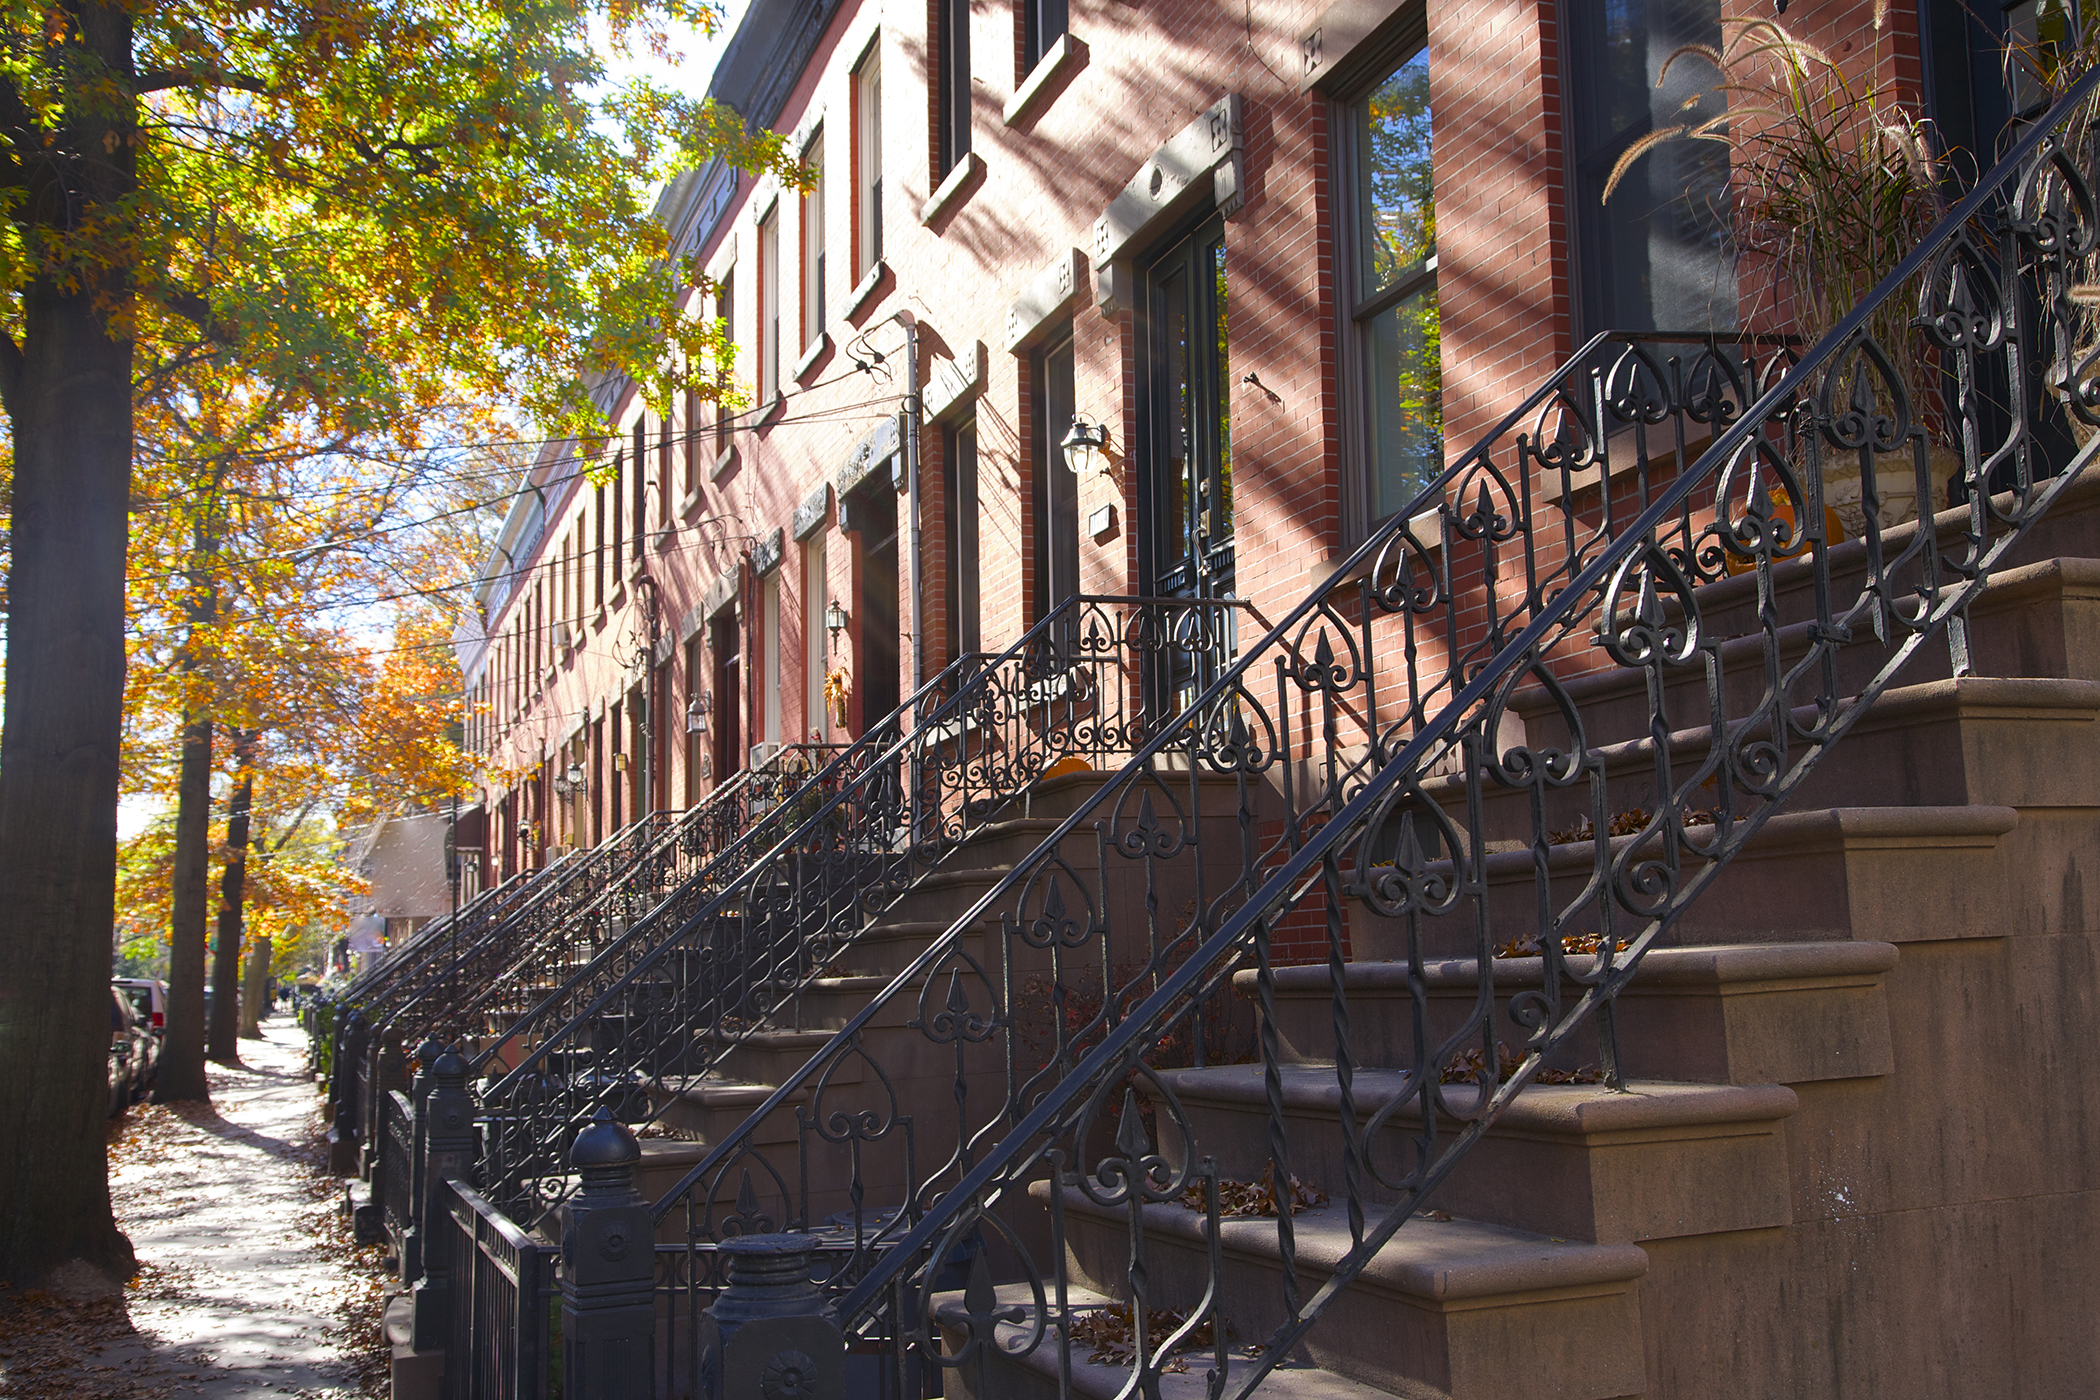 8. Hoboken, New Jersey: This New York City neighbor has a median household income of $122,873 and streets lined with stately brick townhouses.